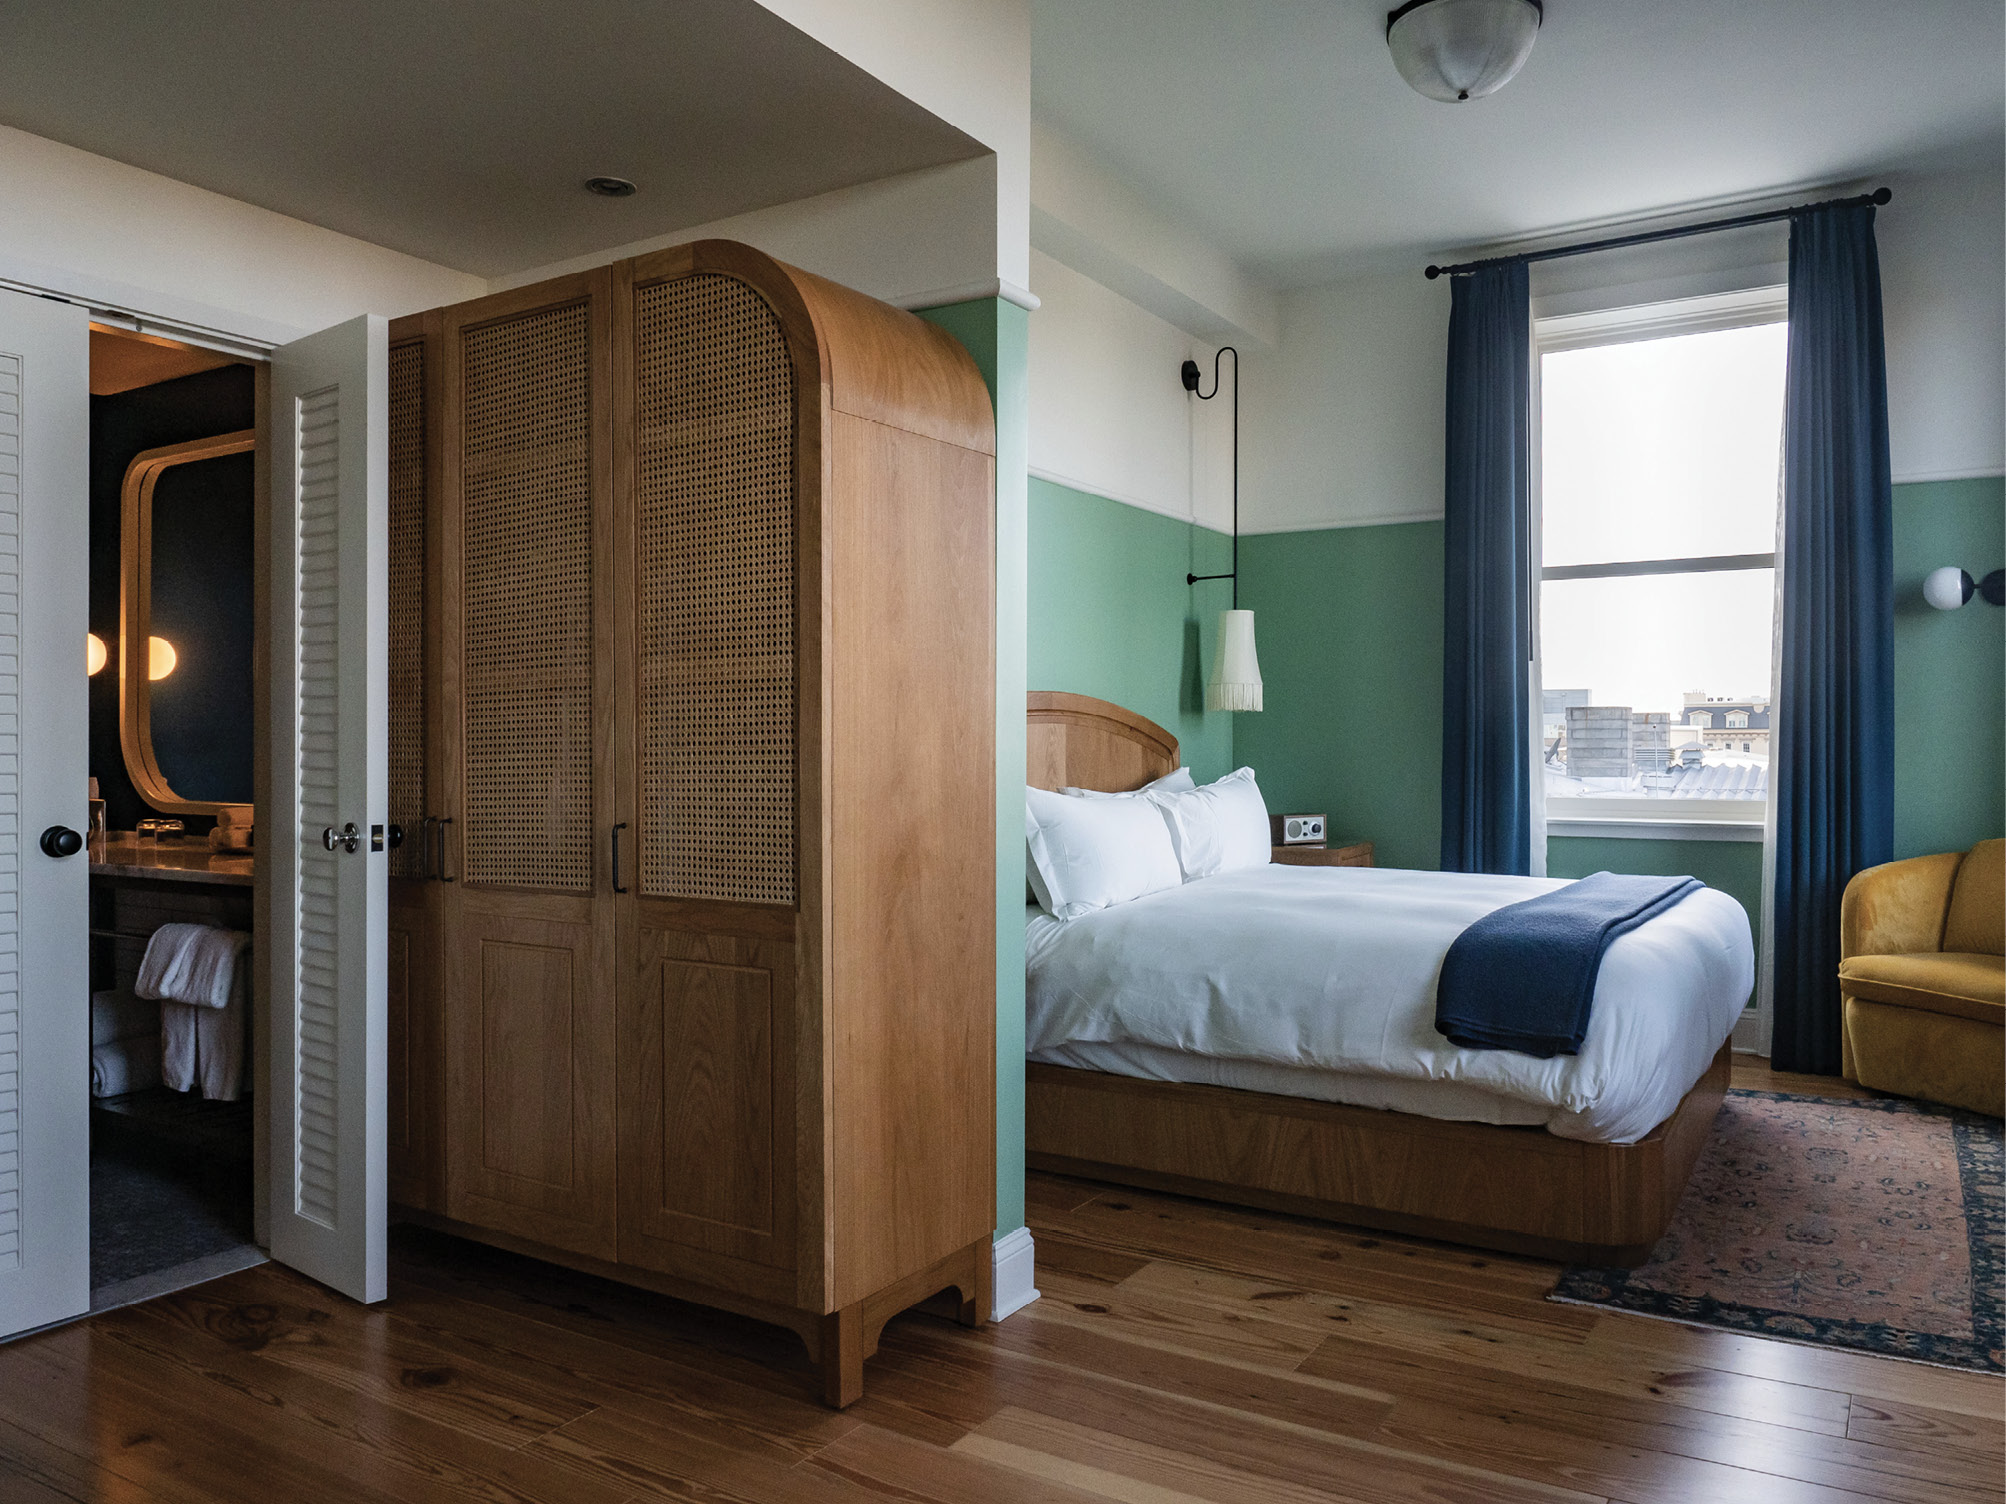 A fifth-floor guest room with downtown views